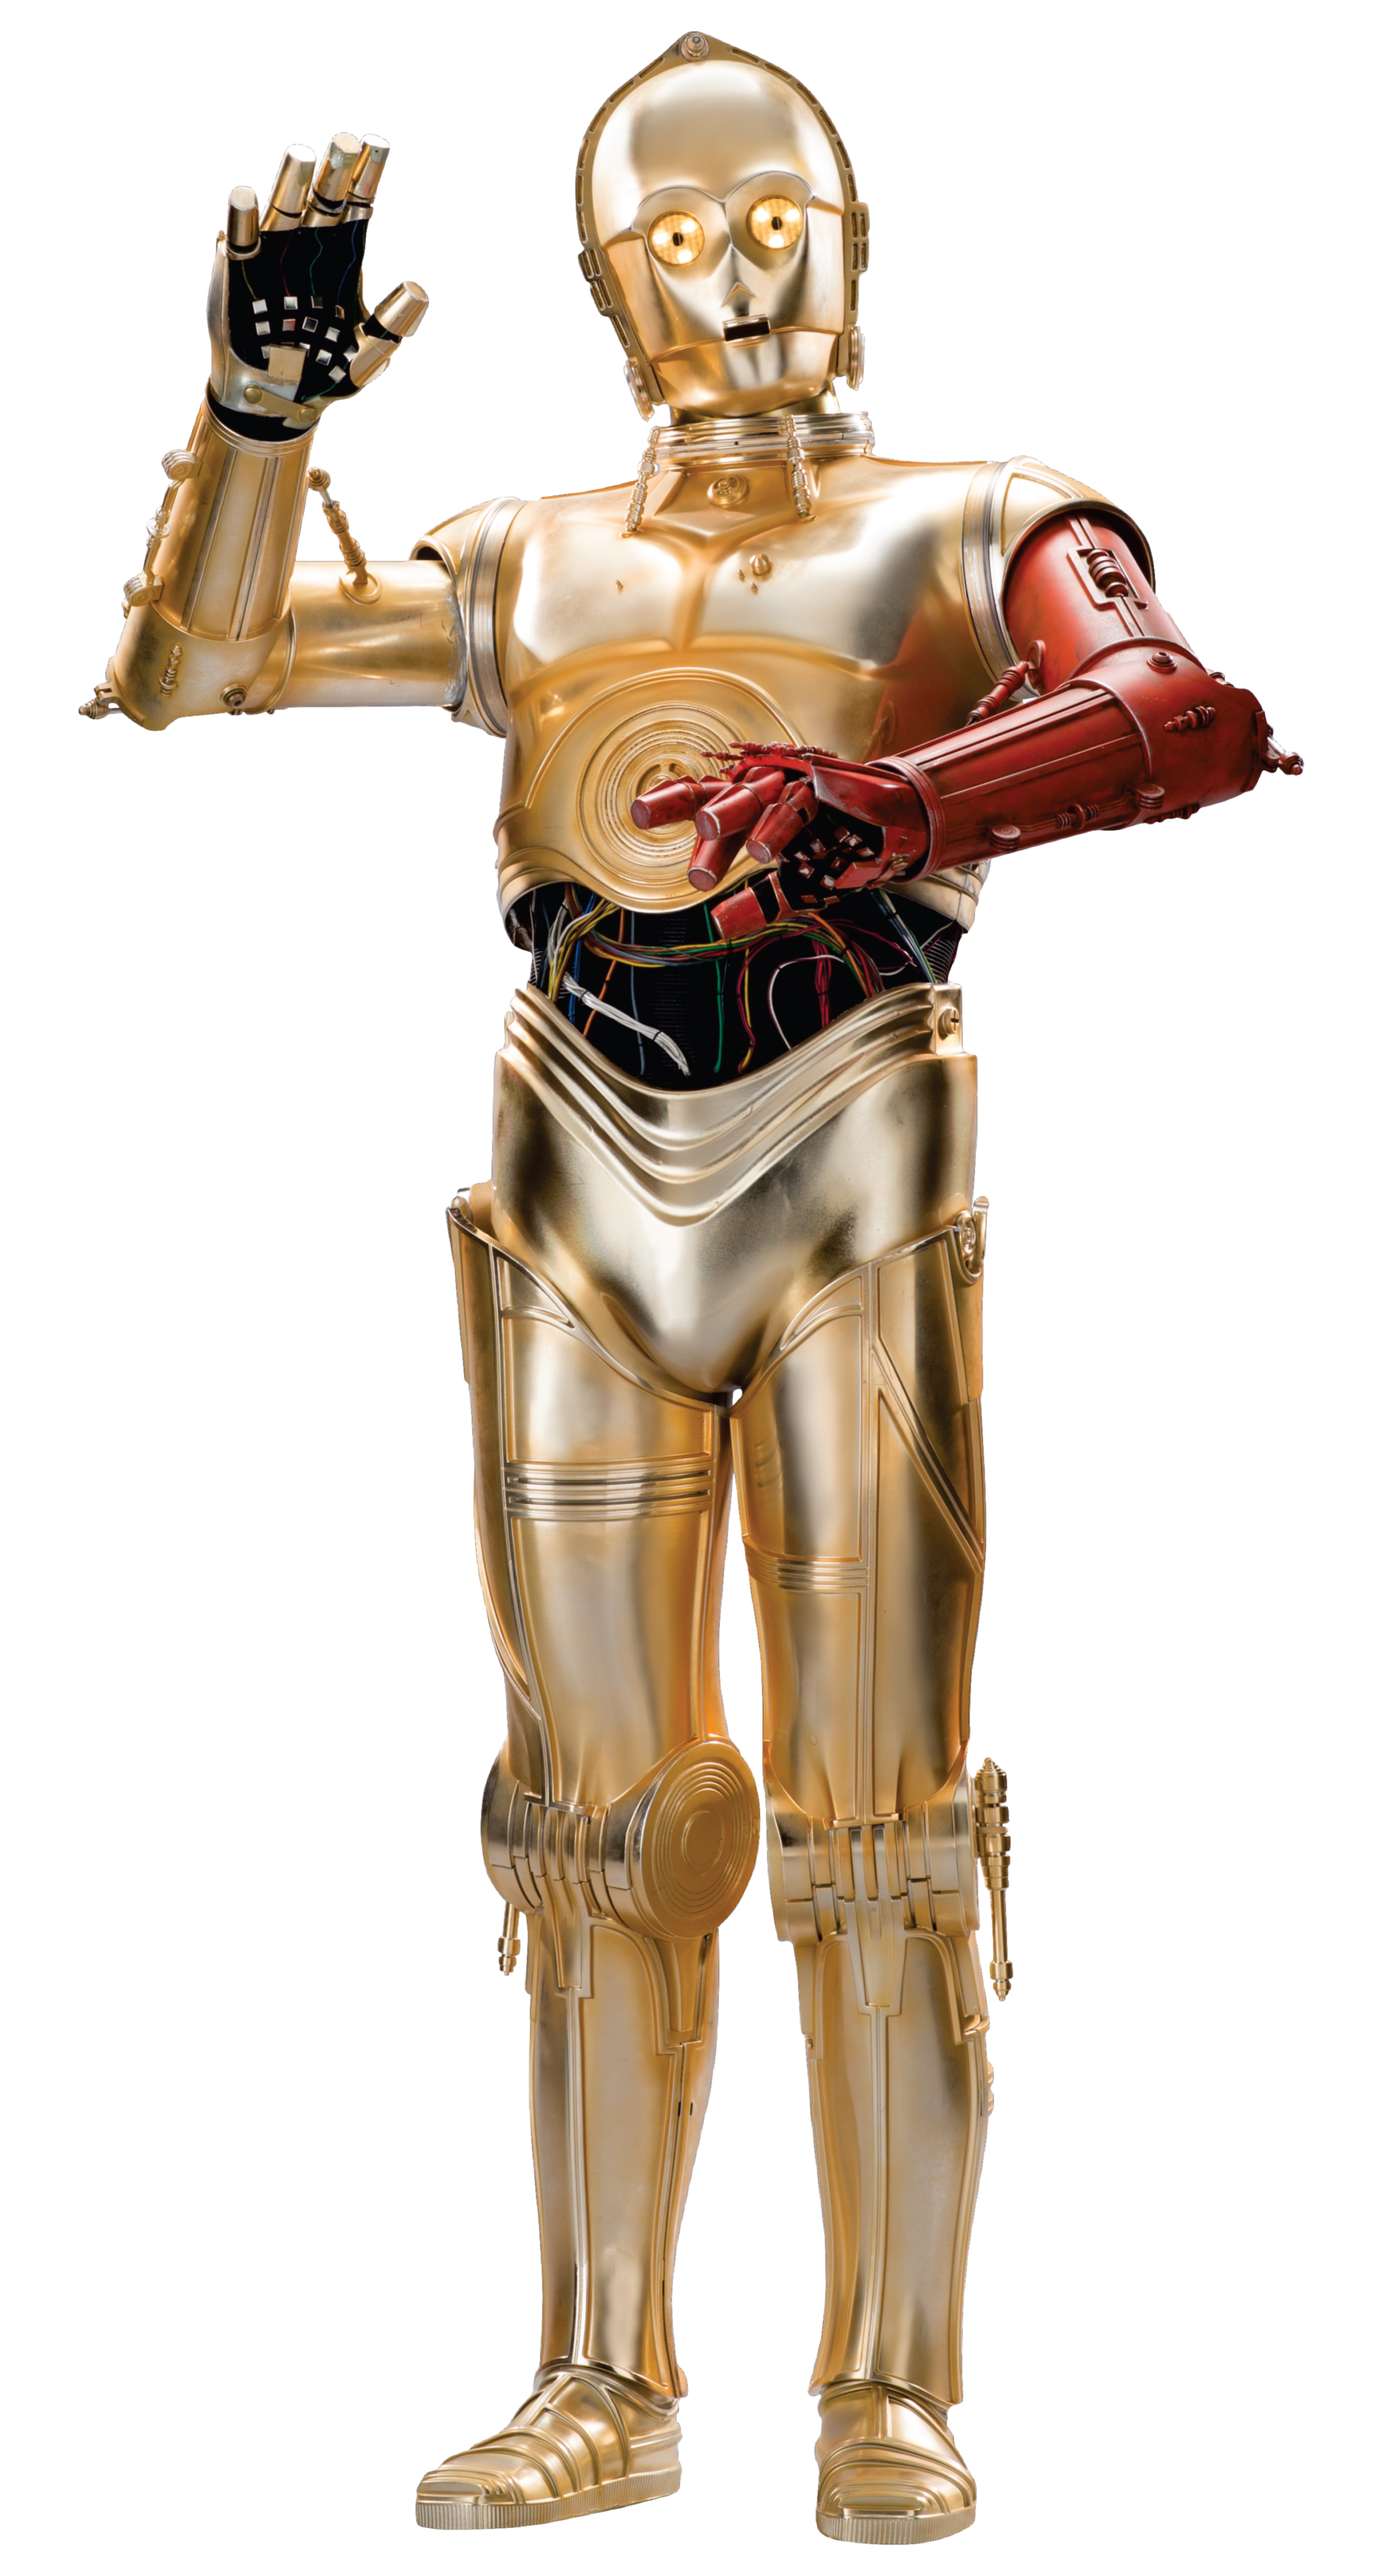 c 3po wookieepedia fandom powered by wikia. Black Bedroom Furniture Sets. Home Design Ideas